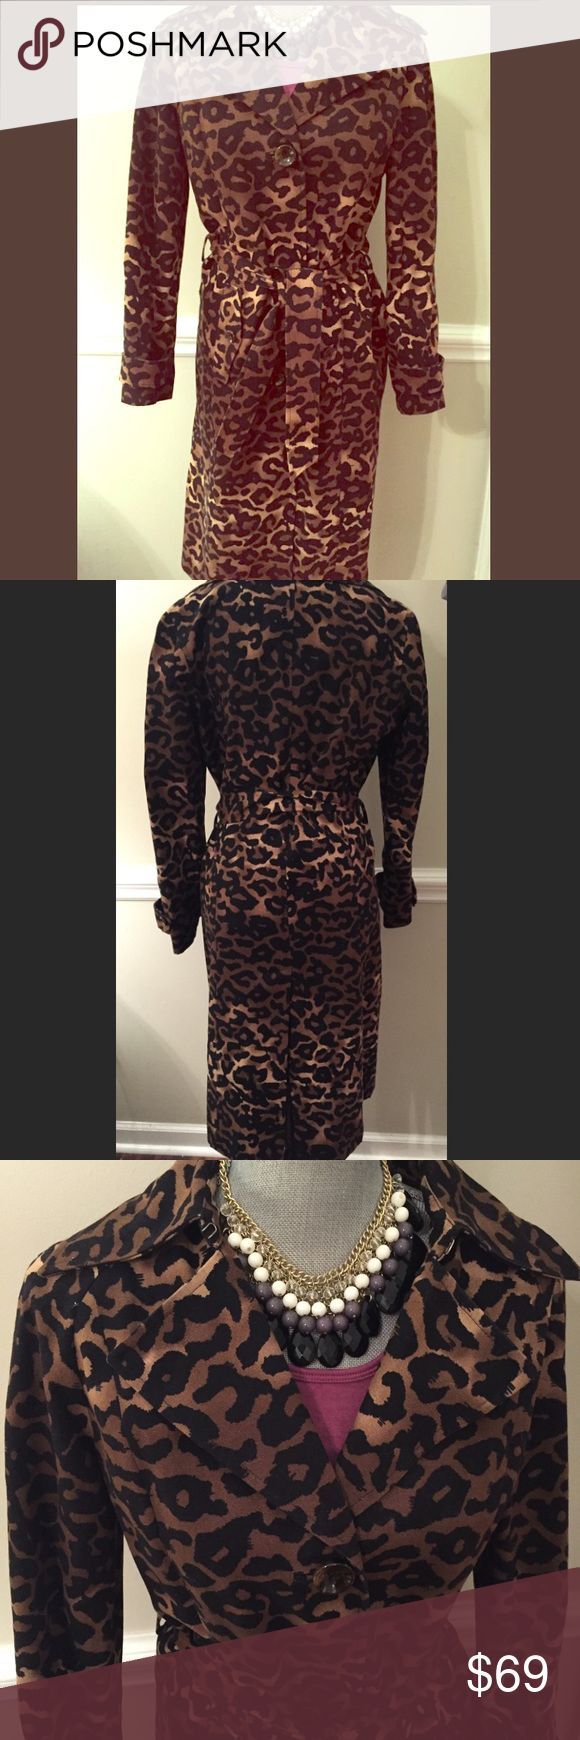 Alfani Leopard Animal Print Belted Trench Coat Alfani belted trench coat in a cool animal/leopard print.  Knee length and button front.  Slit in the back.  Button cuffs on sleeves.  Like new!  From Macy's.    Made of 100% cotton. Alfani Jackets & Coats Trench Coats